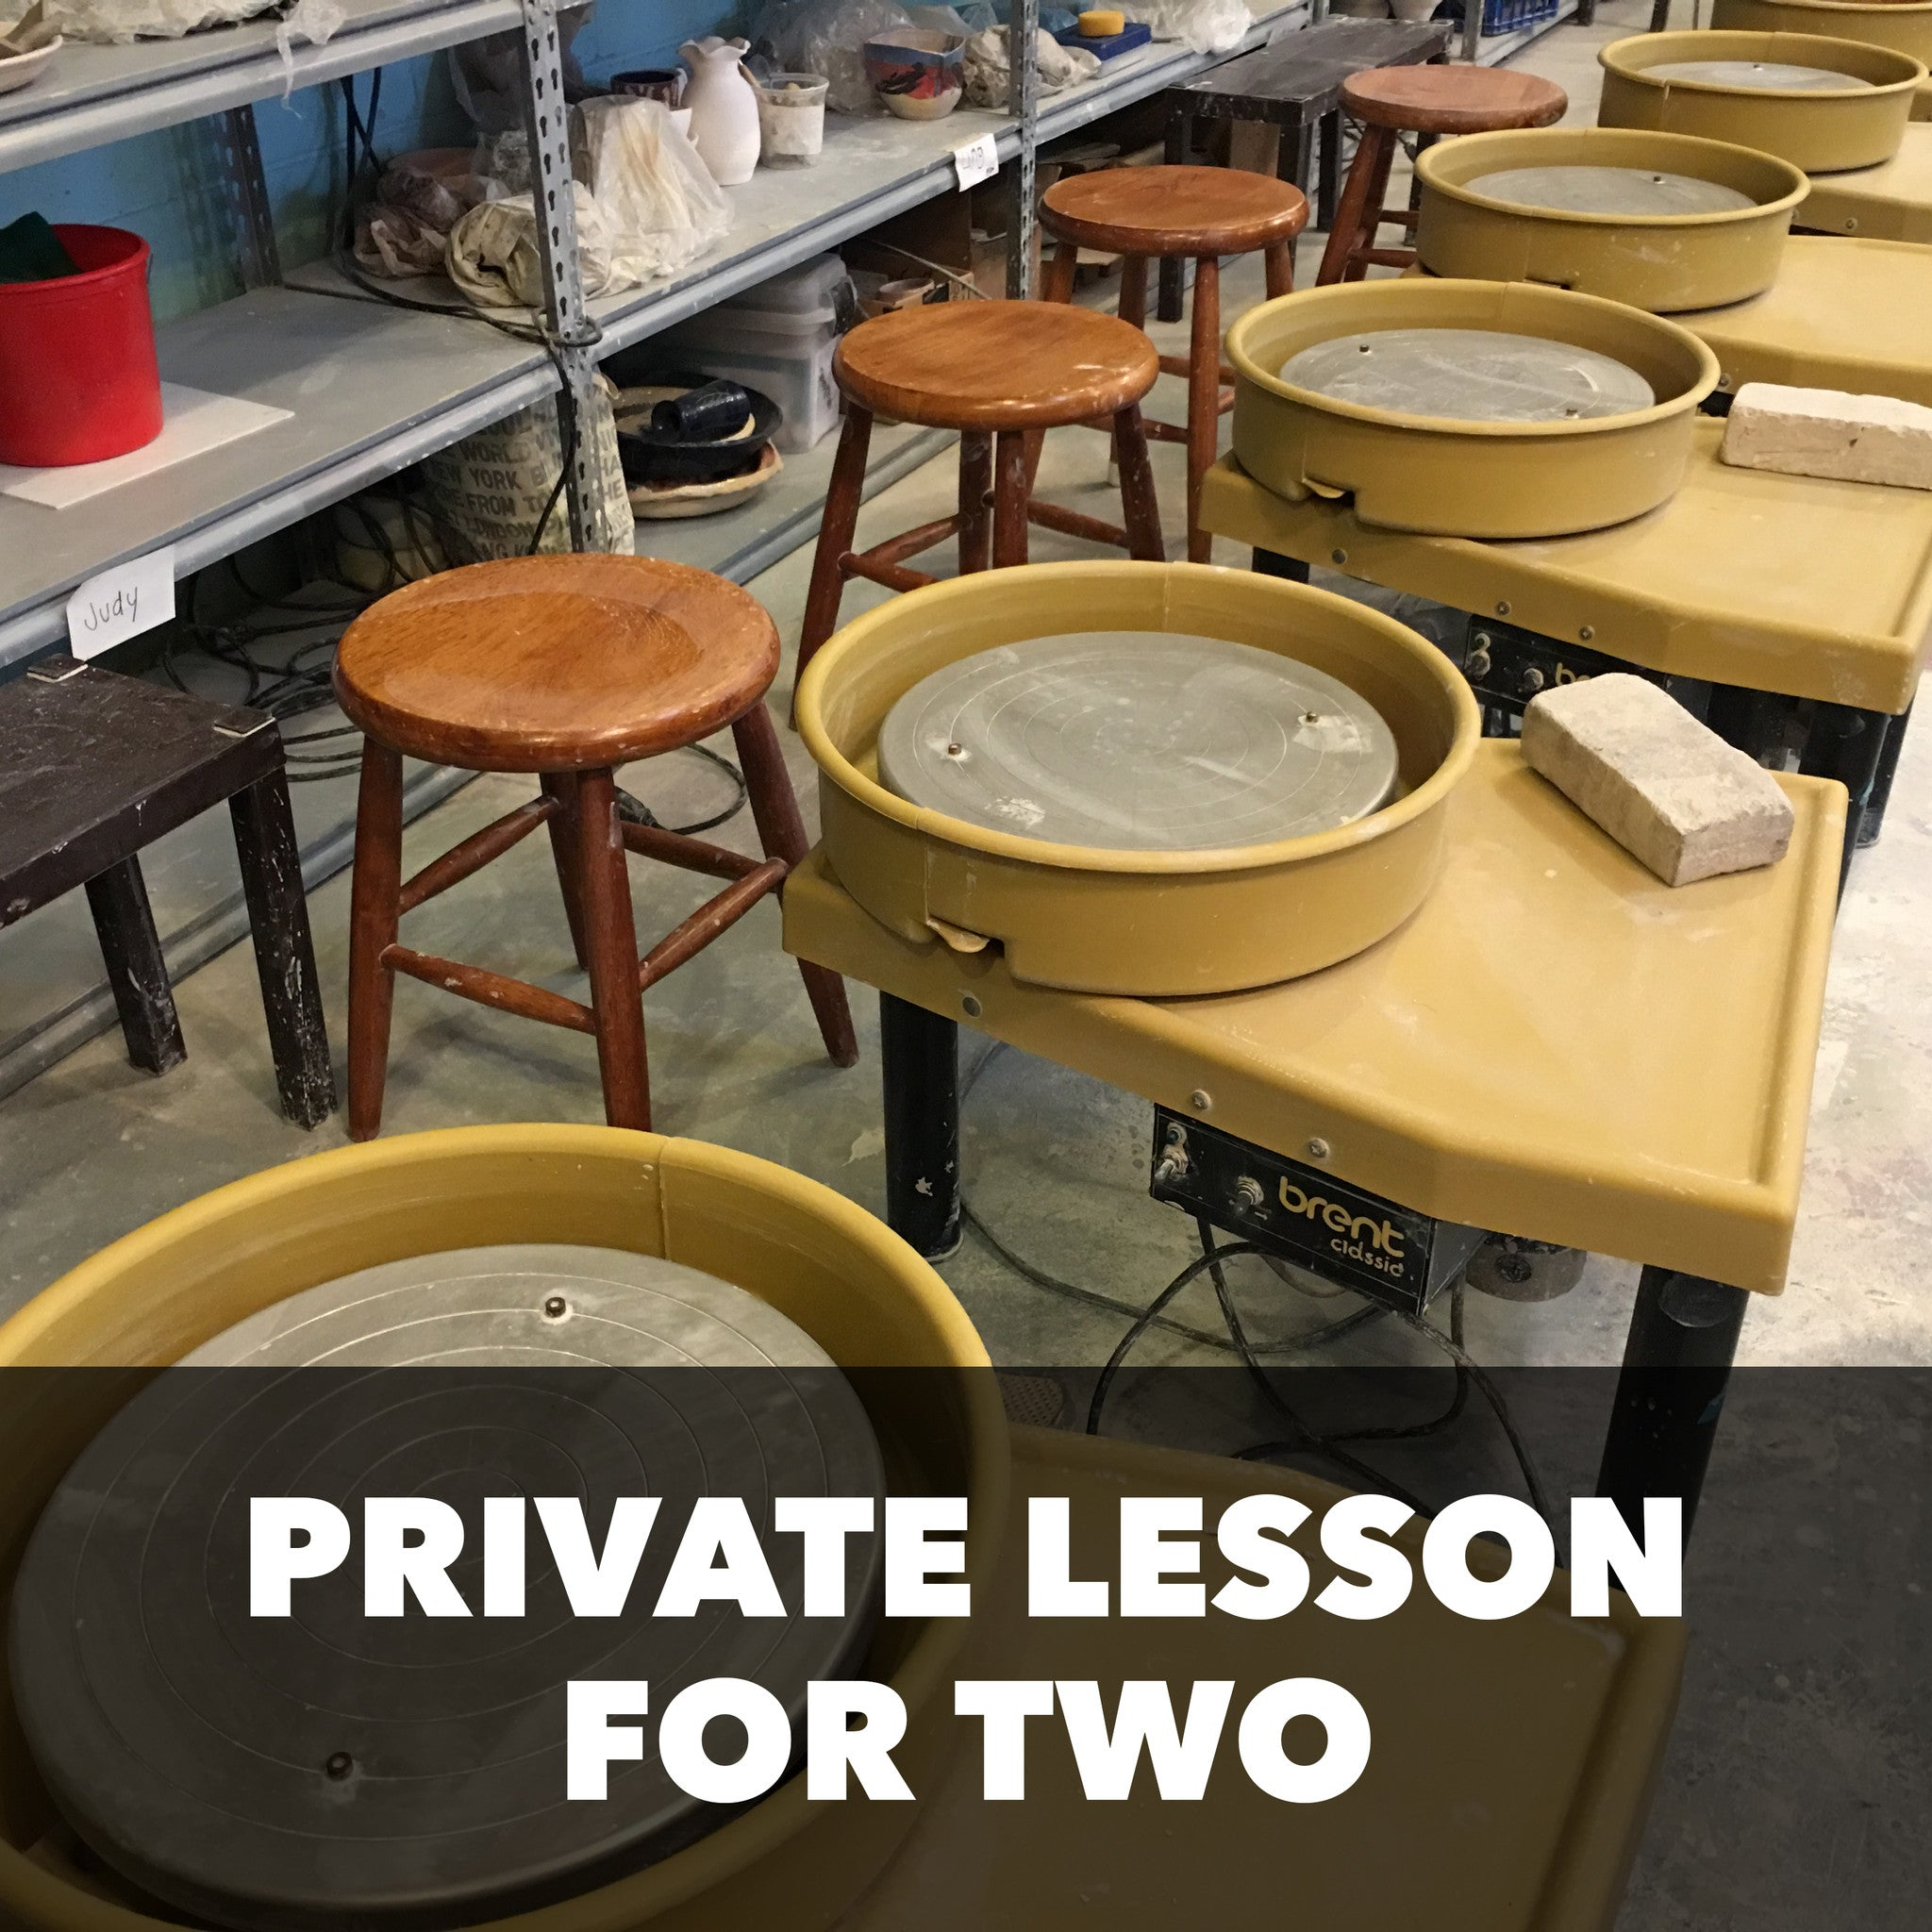 Private Lesson For Two